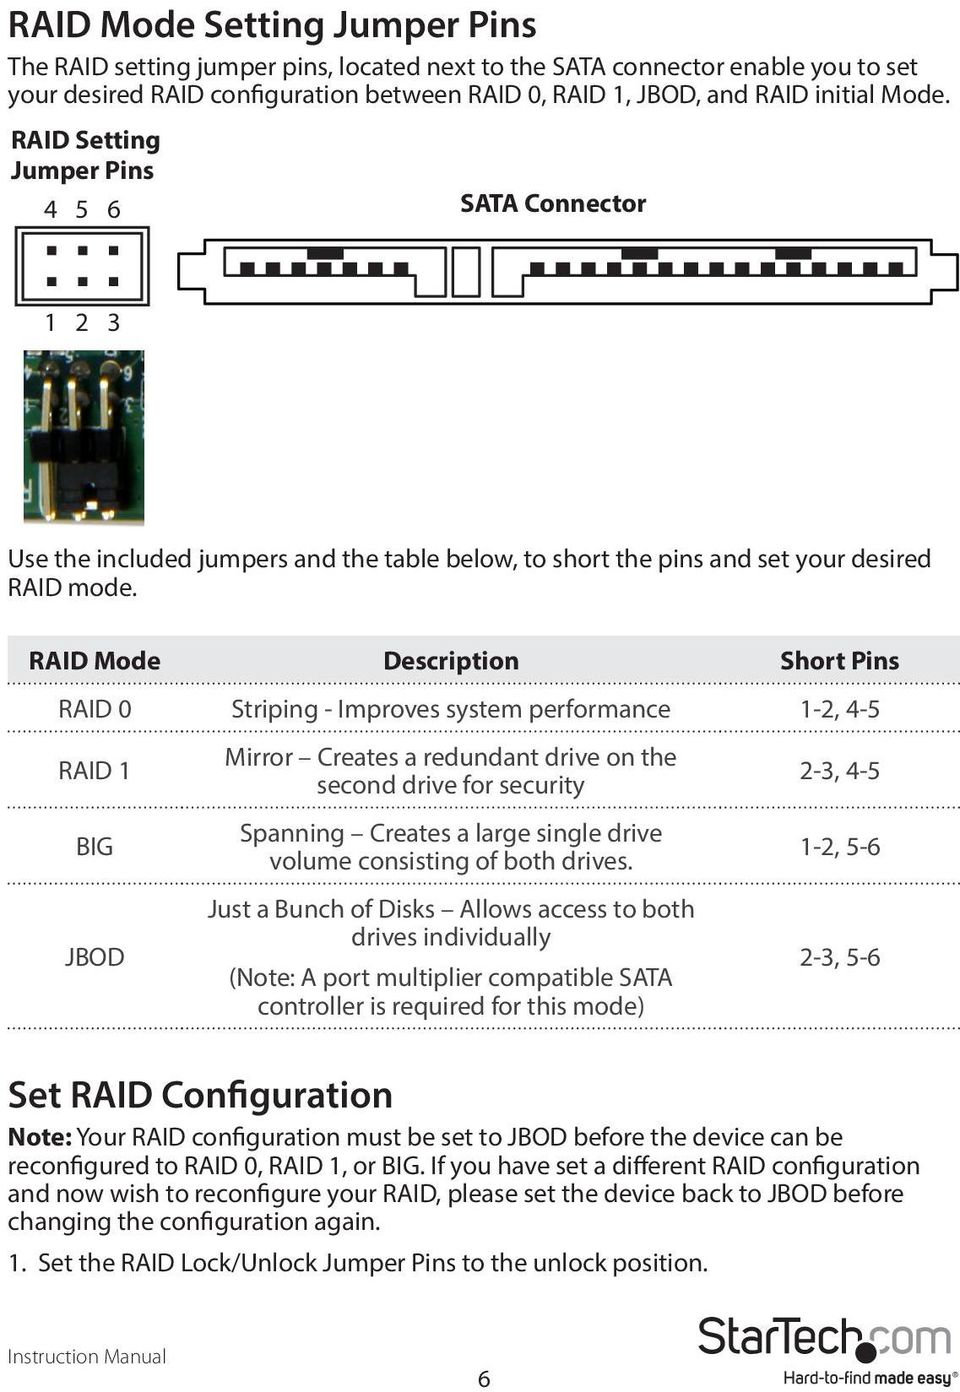 RAID Mode Description Short Pins RAID 0 Striping - Improves system performance 1-2, 4-5 RAID 1 BIG JBOD Mirror Creates a redundant drive on the second drive for security Spanning Creates a large